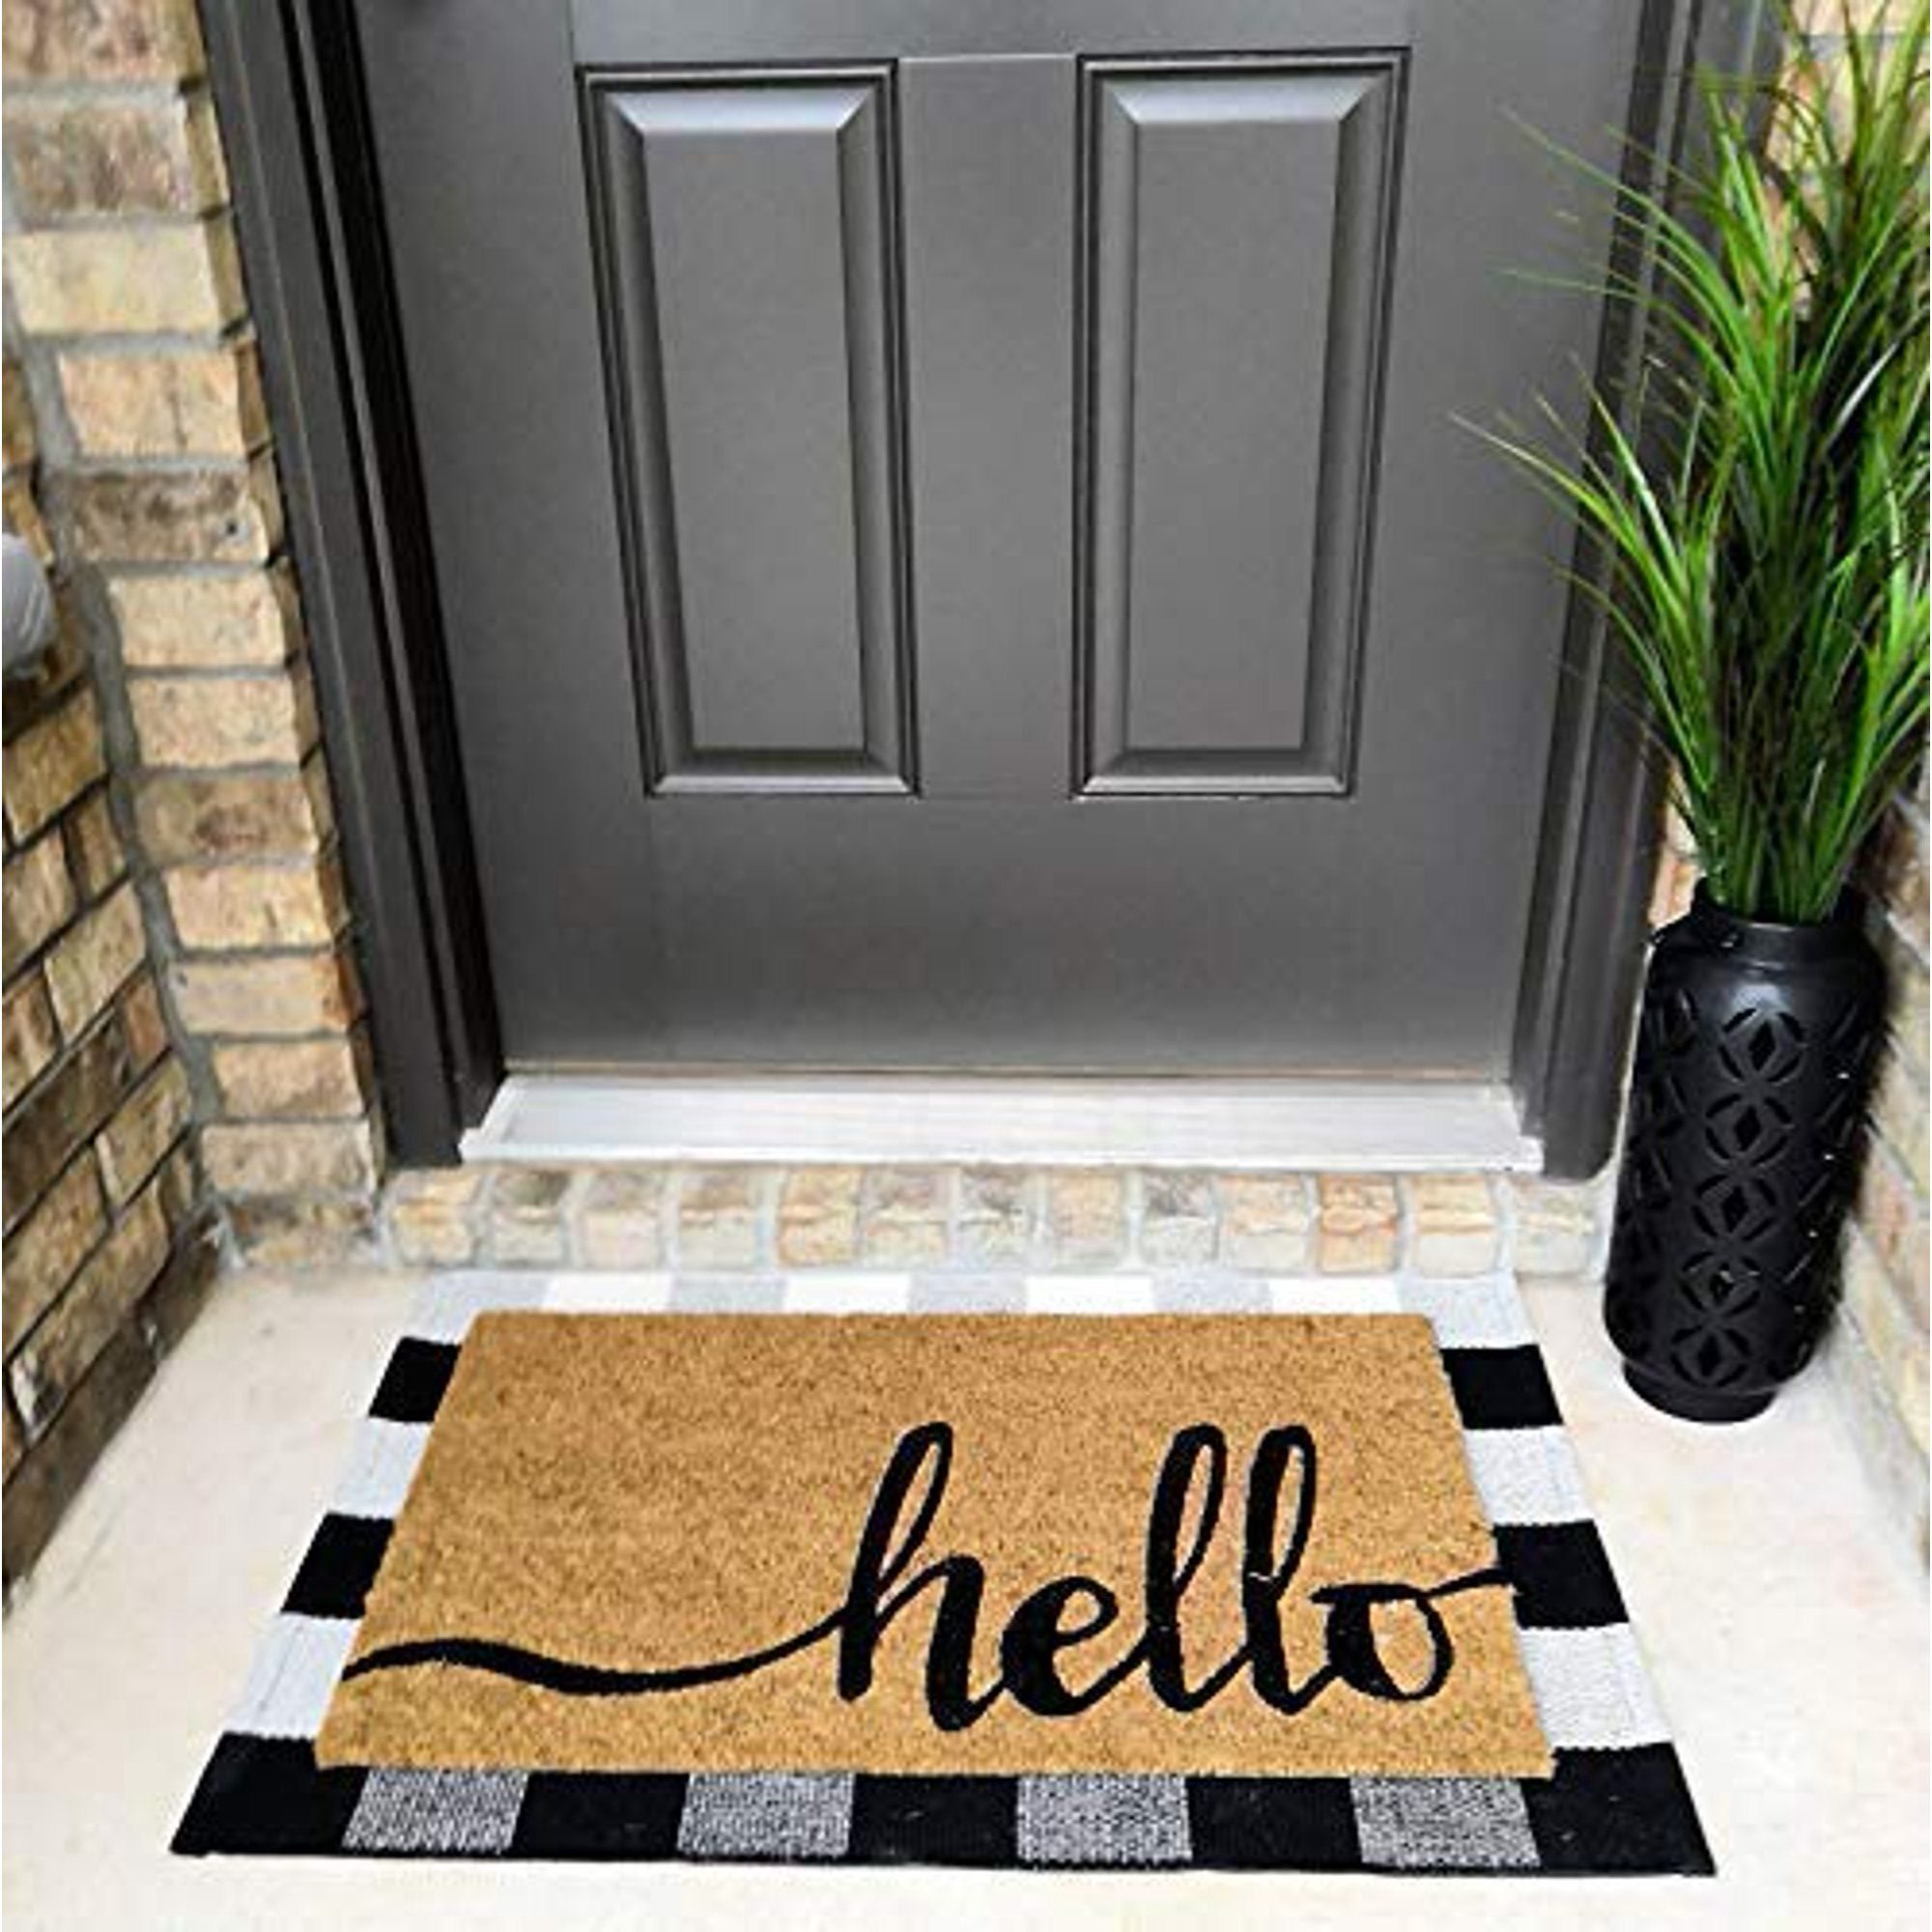 Cotton Buffalo Plaid Rugs Black And White Checkered Rug Welcome Door Mat 17 7 X27 5 Rug For Kitchen Carpet Bathroom Outdoor Porch Laundry Living Room Braided In 2020 Plaid Rug Buffalo Plaid Decor